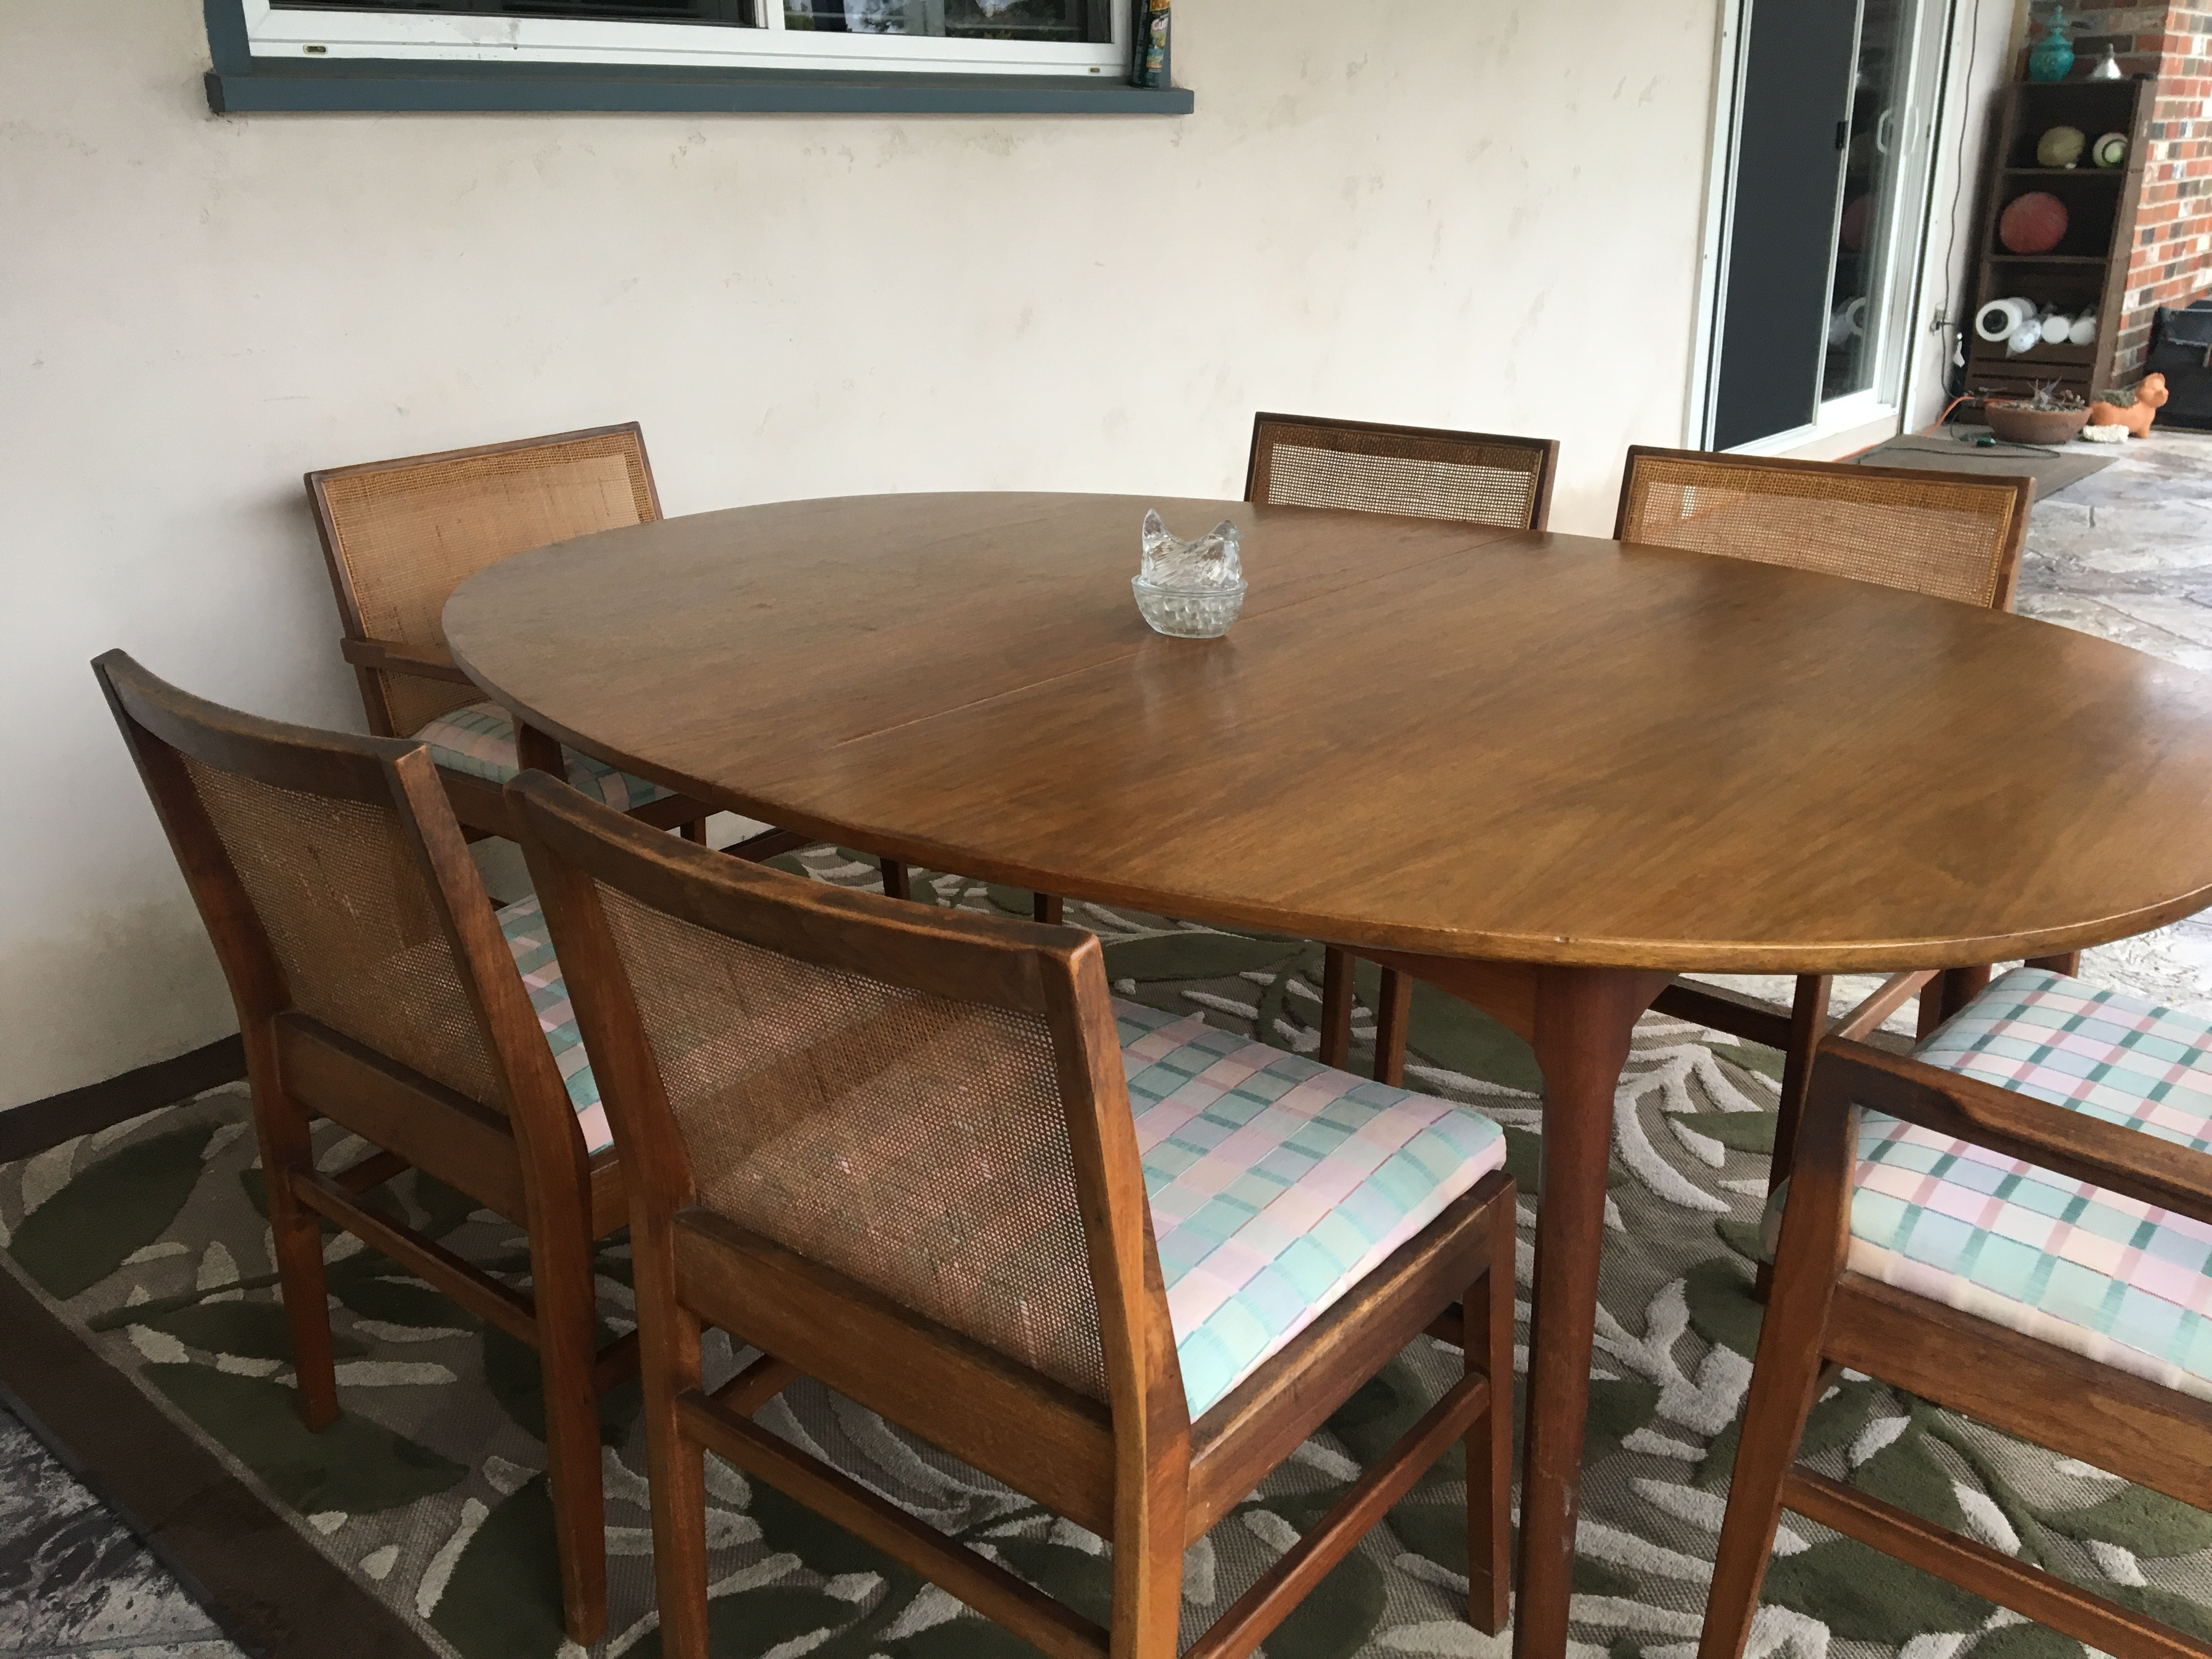 Mid Century Modern Cane Back Dining Chairs Oval Table Antique Appraisal Instappraisal